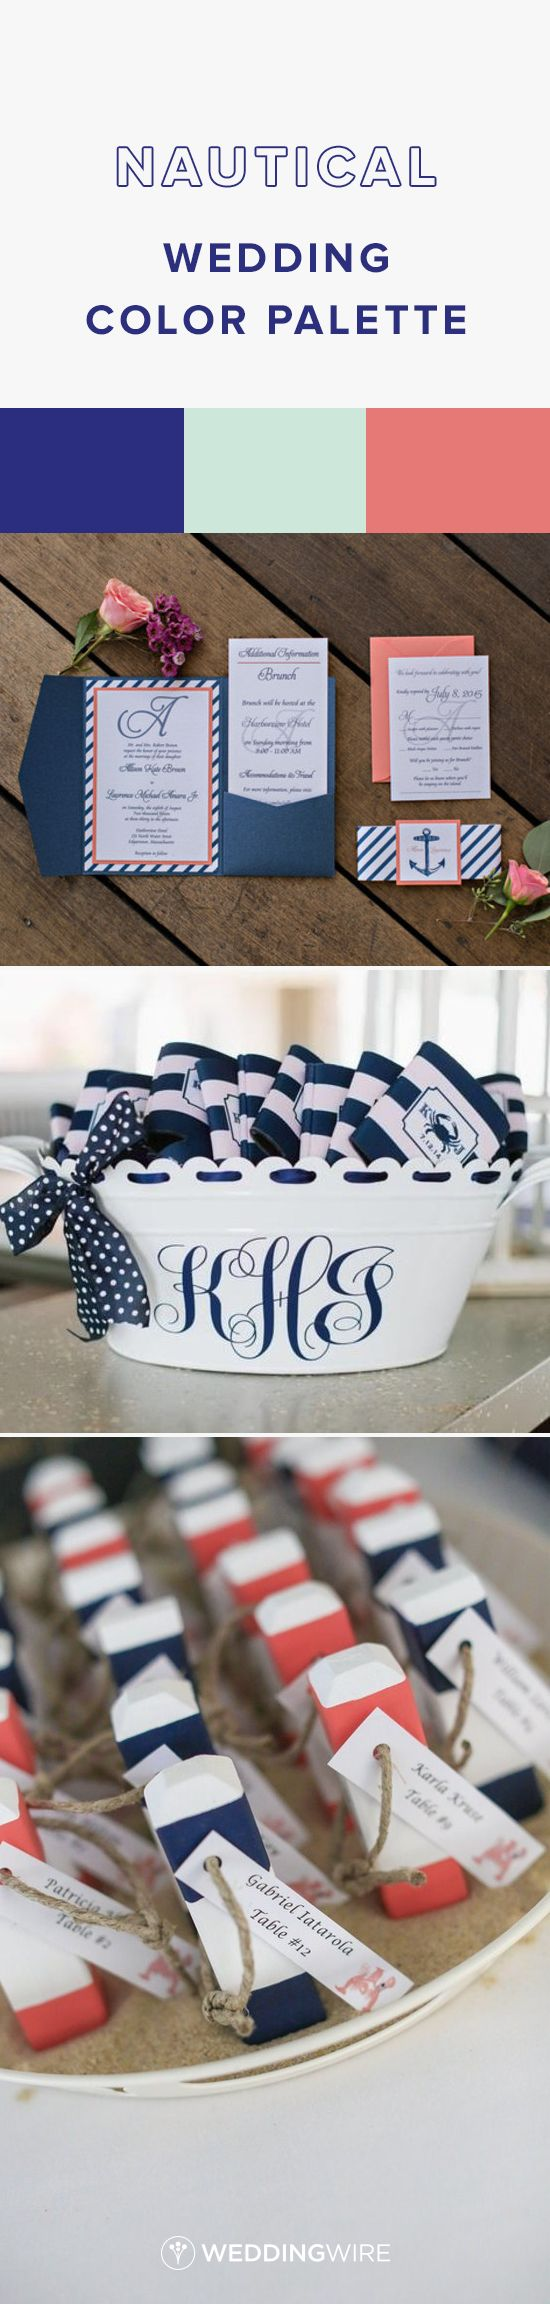 Nautical Wedding Color Palette - Navy, Mint and Coral Wedding Color Palette - see more wedding color palette ideas on @WeddingWire {Shoreshotz Photography; Natalie Franke Photography; The Maine Tinker Studio}